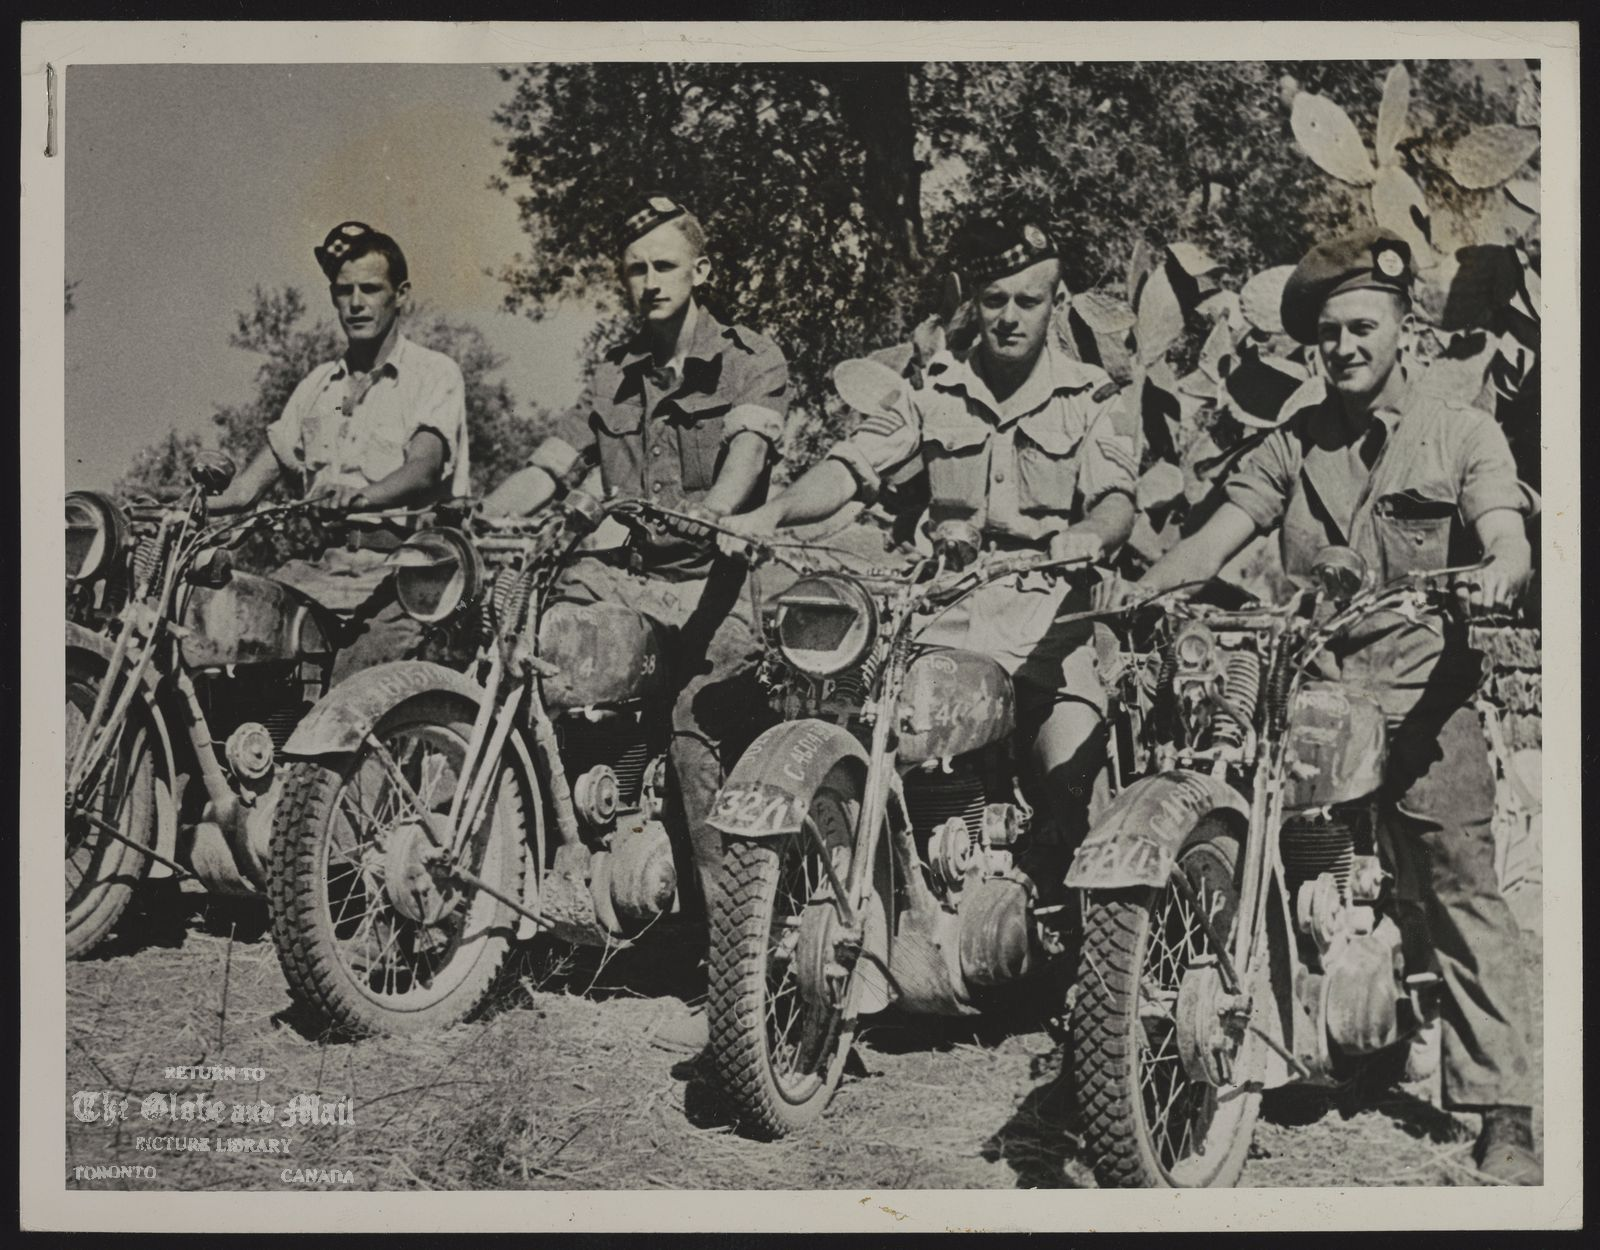 WORLD WAR II CANADA FORCES IN ITALY 23013- STURDY MOTORCYCLES TOOK MESSAGES THROUGH IN SICILY Stress laid on motorcycle maintenance by the Army paid dividends for these Canadian dispatch riders whose daring combined with mechanically perfect mounts to win a deadly game from Axis snipers on tortuous Sicily terrain. Establishment of a mobile motorcycle maintenance school is the latest step to verse Canadian troops in motorcycle mechanics. Dispatch riders pictured in Sicily are, left to right, Pte. J.C. Owen, Port Colbourne, Ont., Pte. E. Cooper, Toronto, Sgt, R.V. Dooley, Toronto, and L/cpl. B.E. MacDonald, Toronto, all of the 48th Highlanders of Toronto. (CANADIAN ARMY OVERSEAS PHOTO)